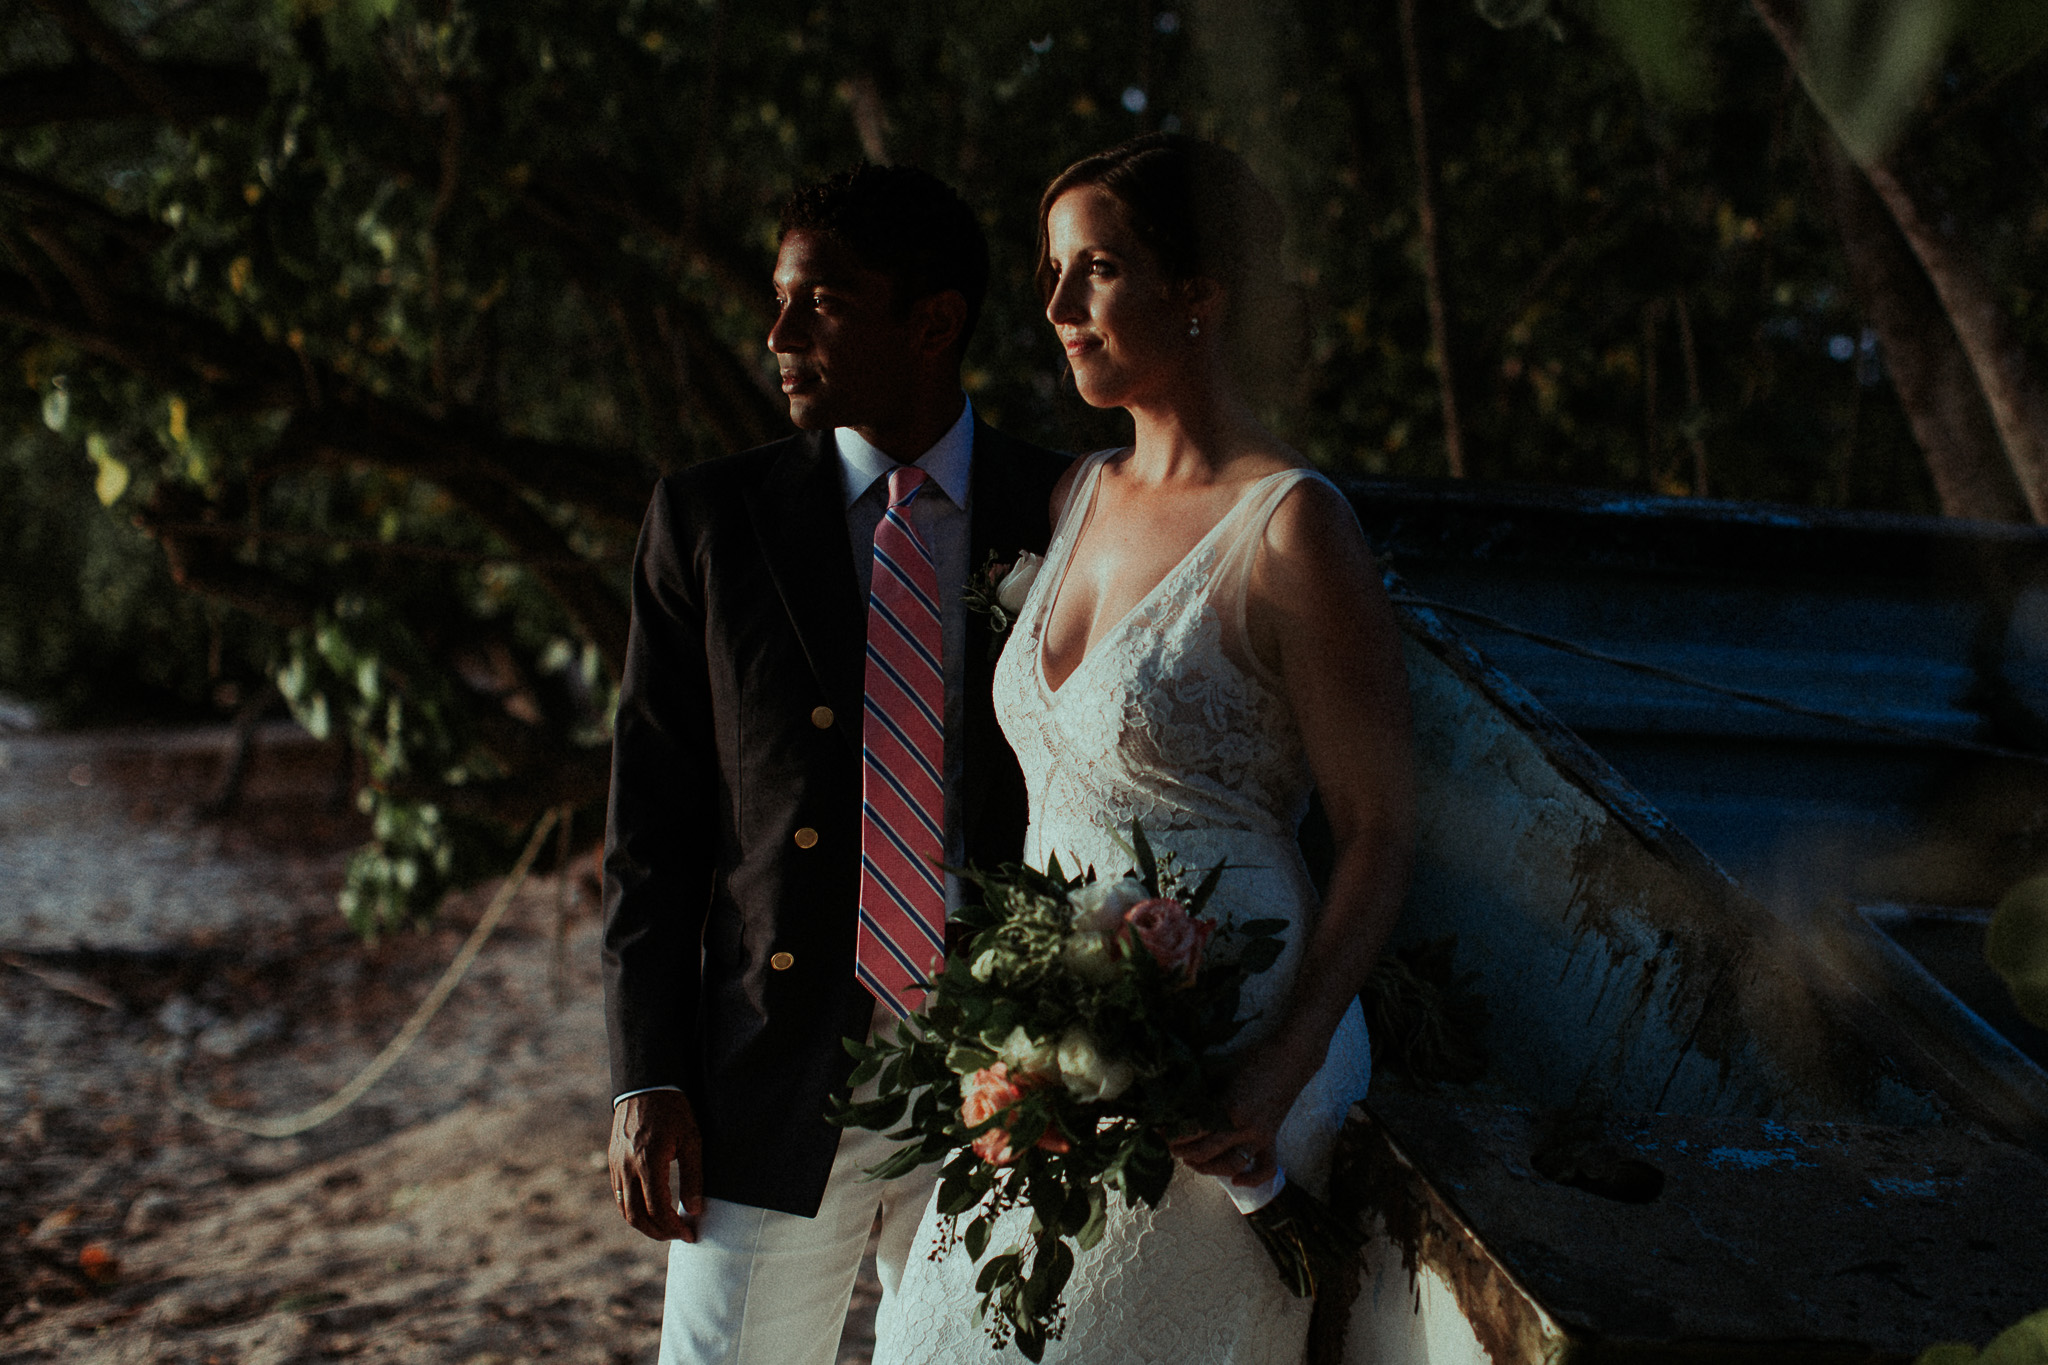 Jennifer+Ryan wedding in Trinidad and Tobago